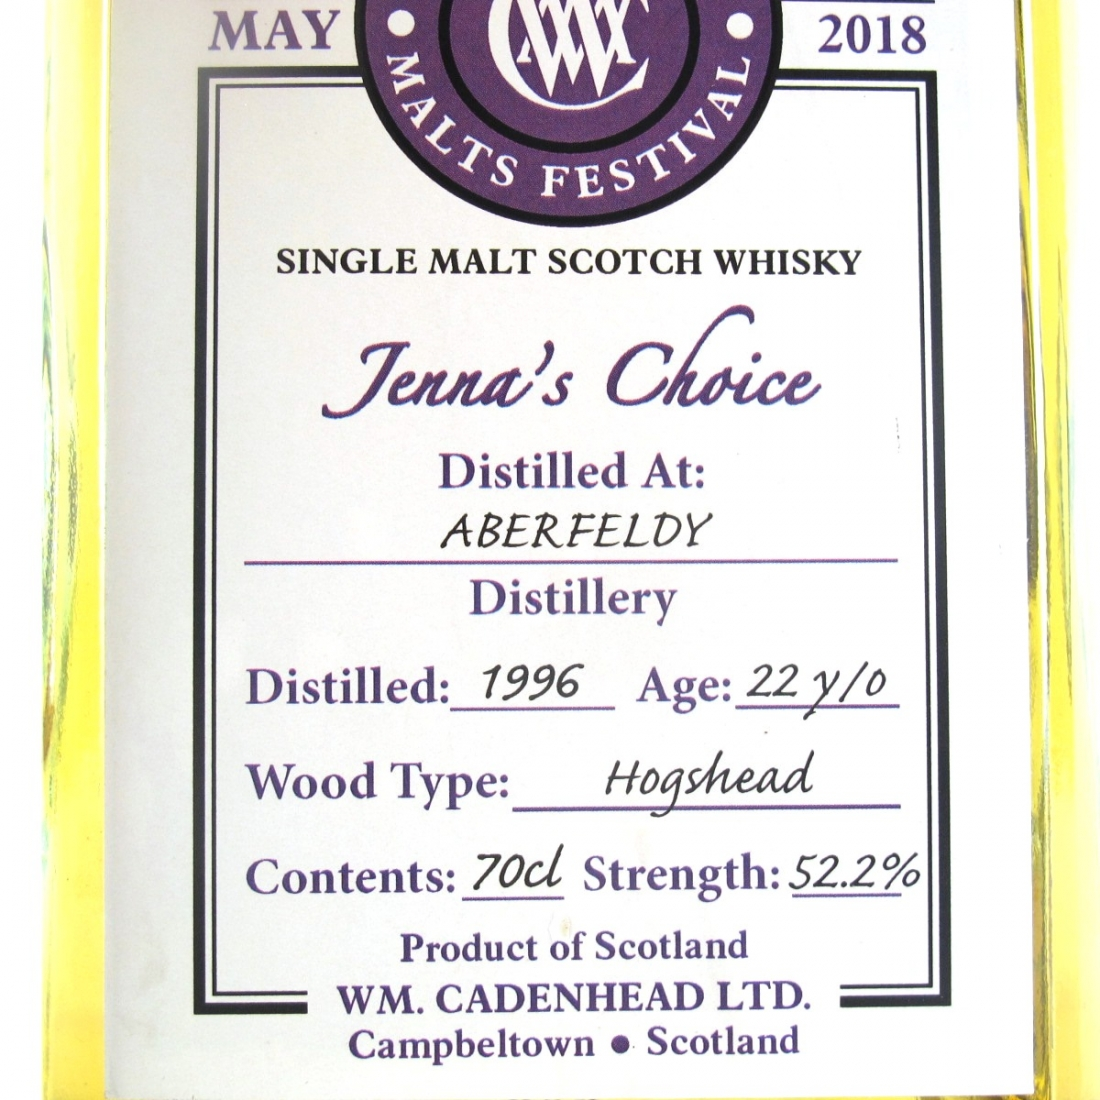 Aberfeldy 1996 Cadenhead's 22 Year Old / Jenna's Choice